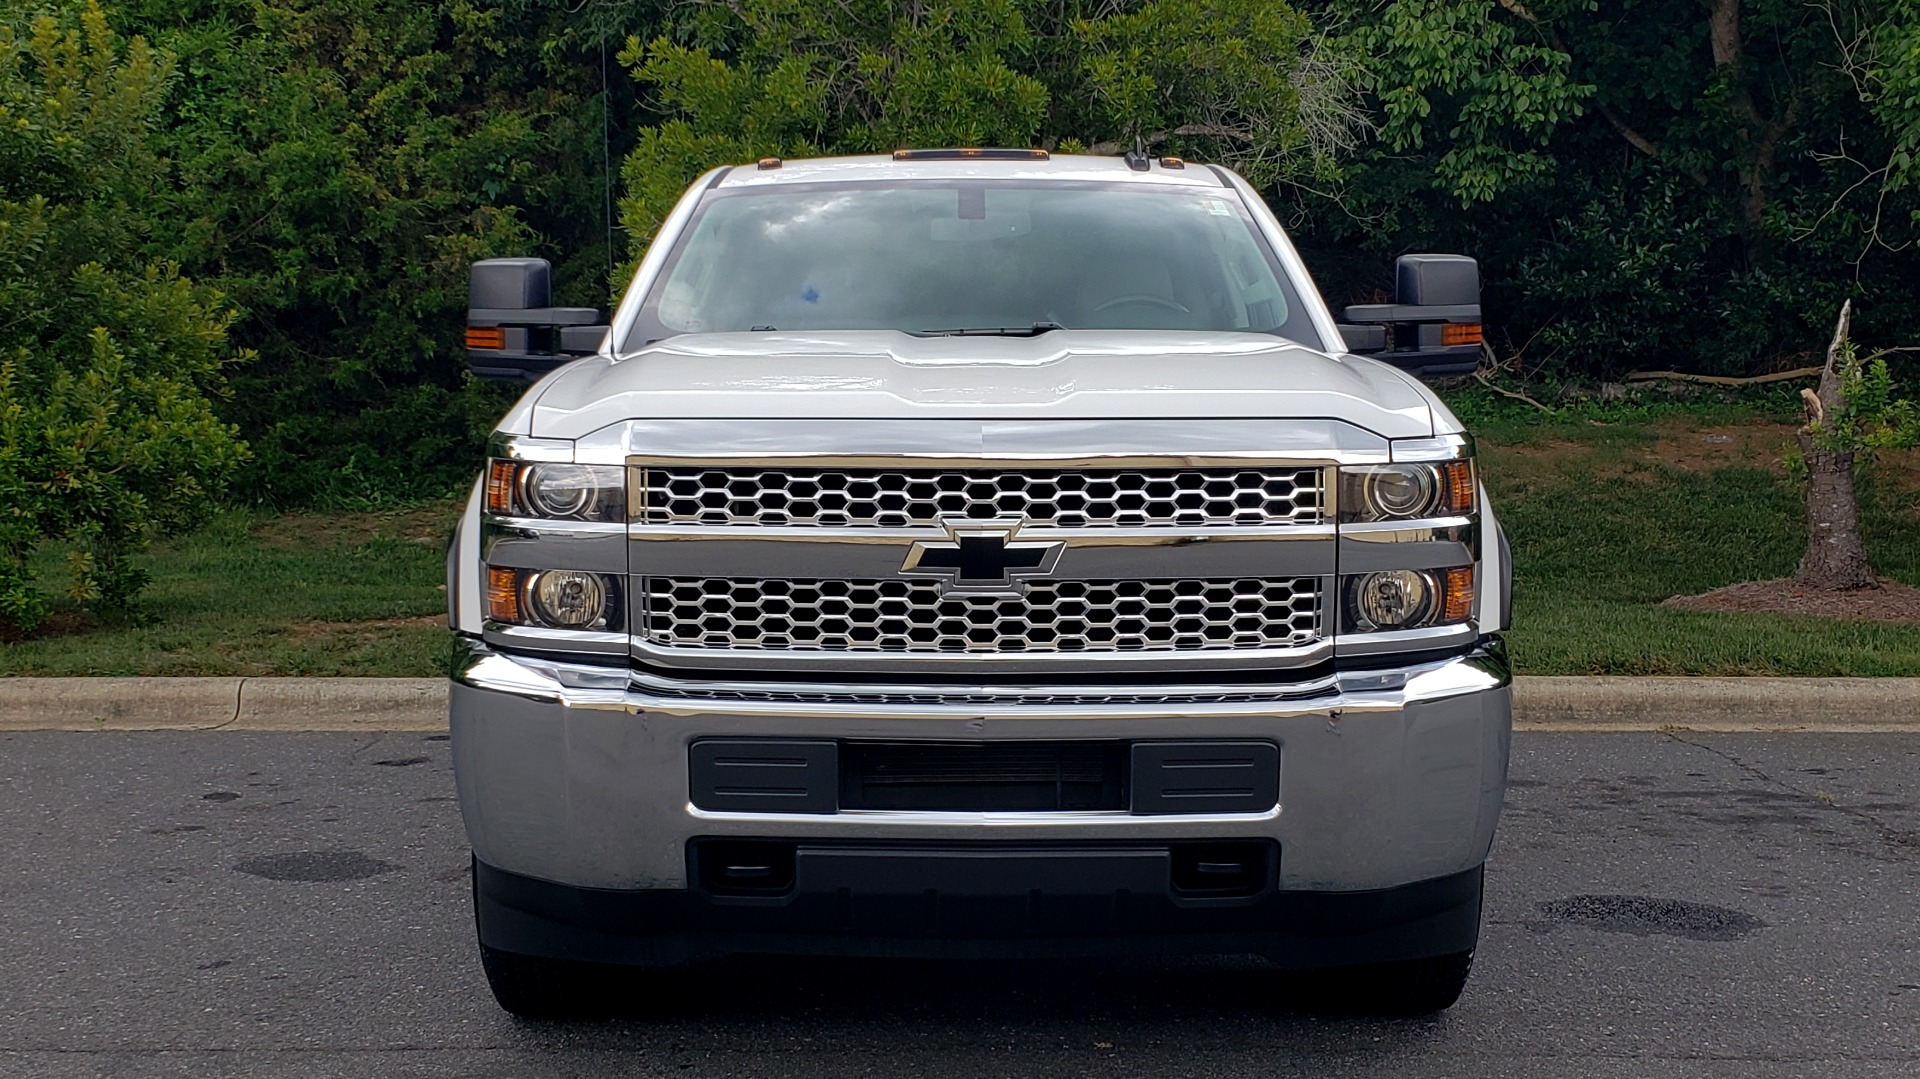 Used 2019 Chevrolet SILVERADO 2500HD WORK TRUCK / CREW CAB / 6.0L V8 / 4WD / BEDLINER for sale Sold at Formula Imports in Charlotte NC 28227 18